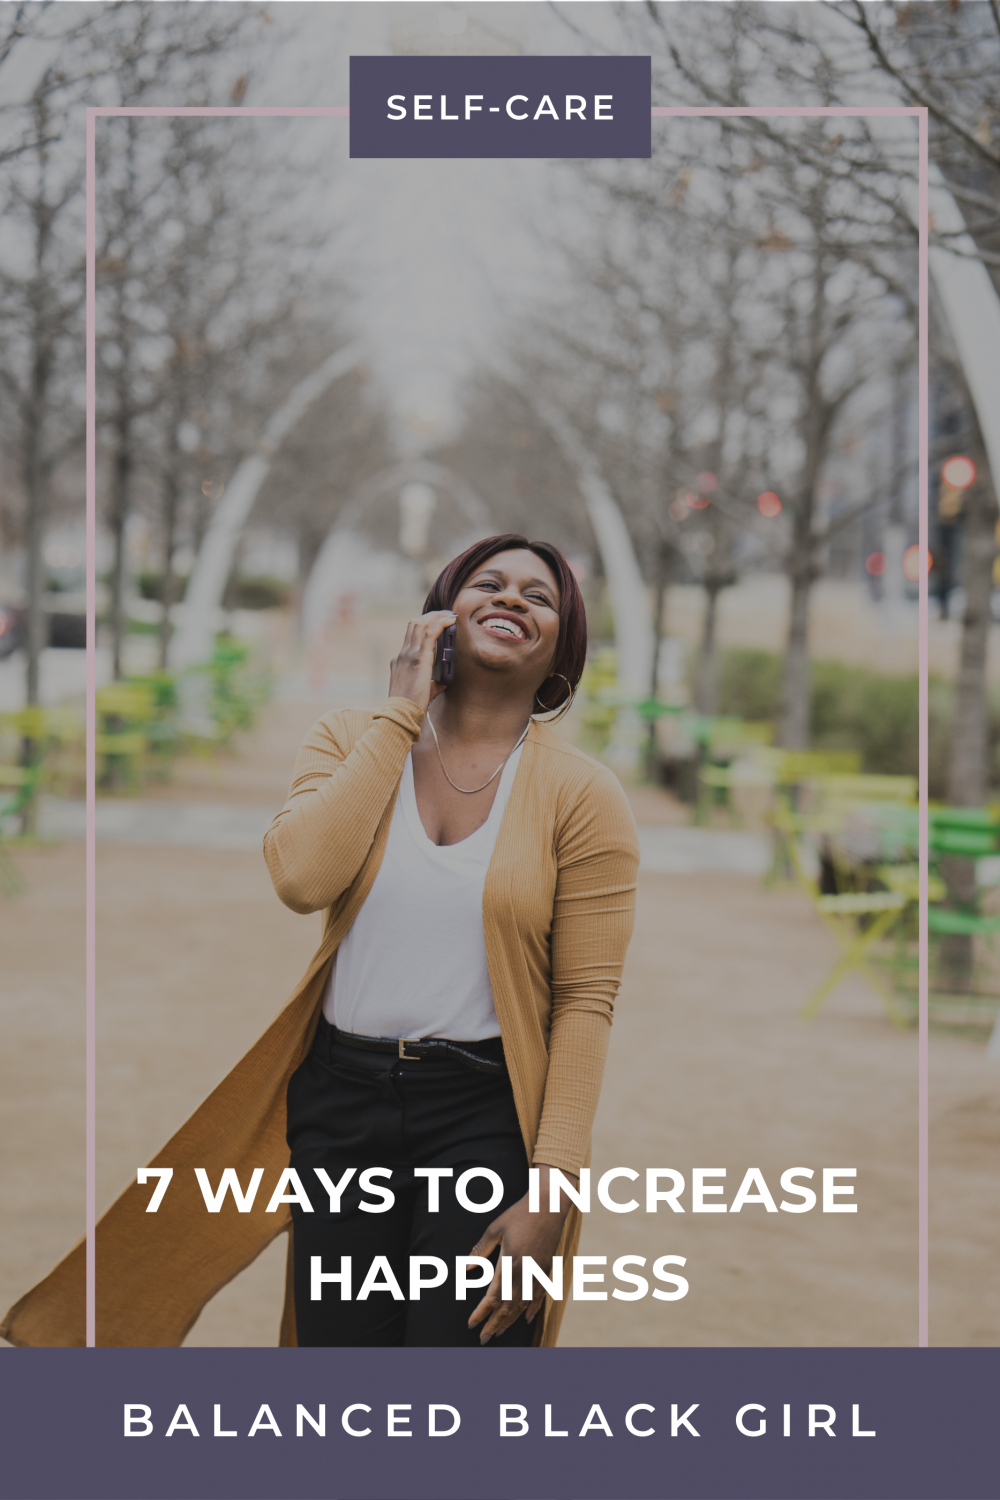 7 Ways to Increase Happiness